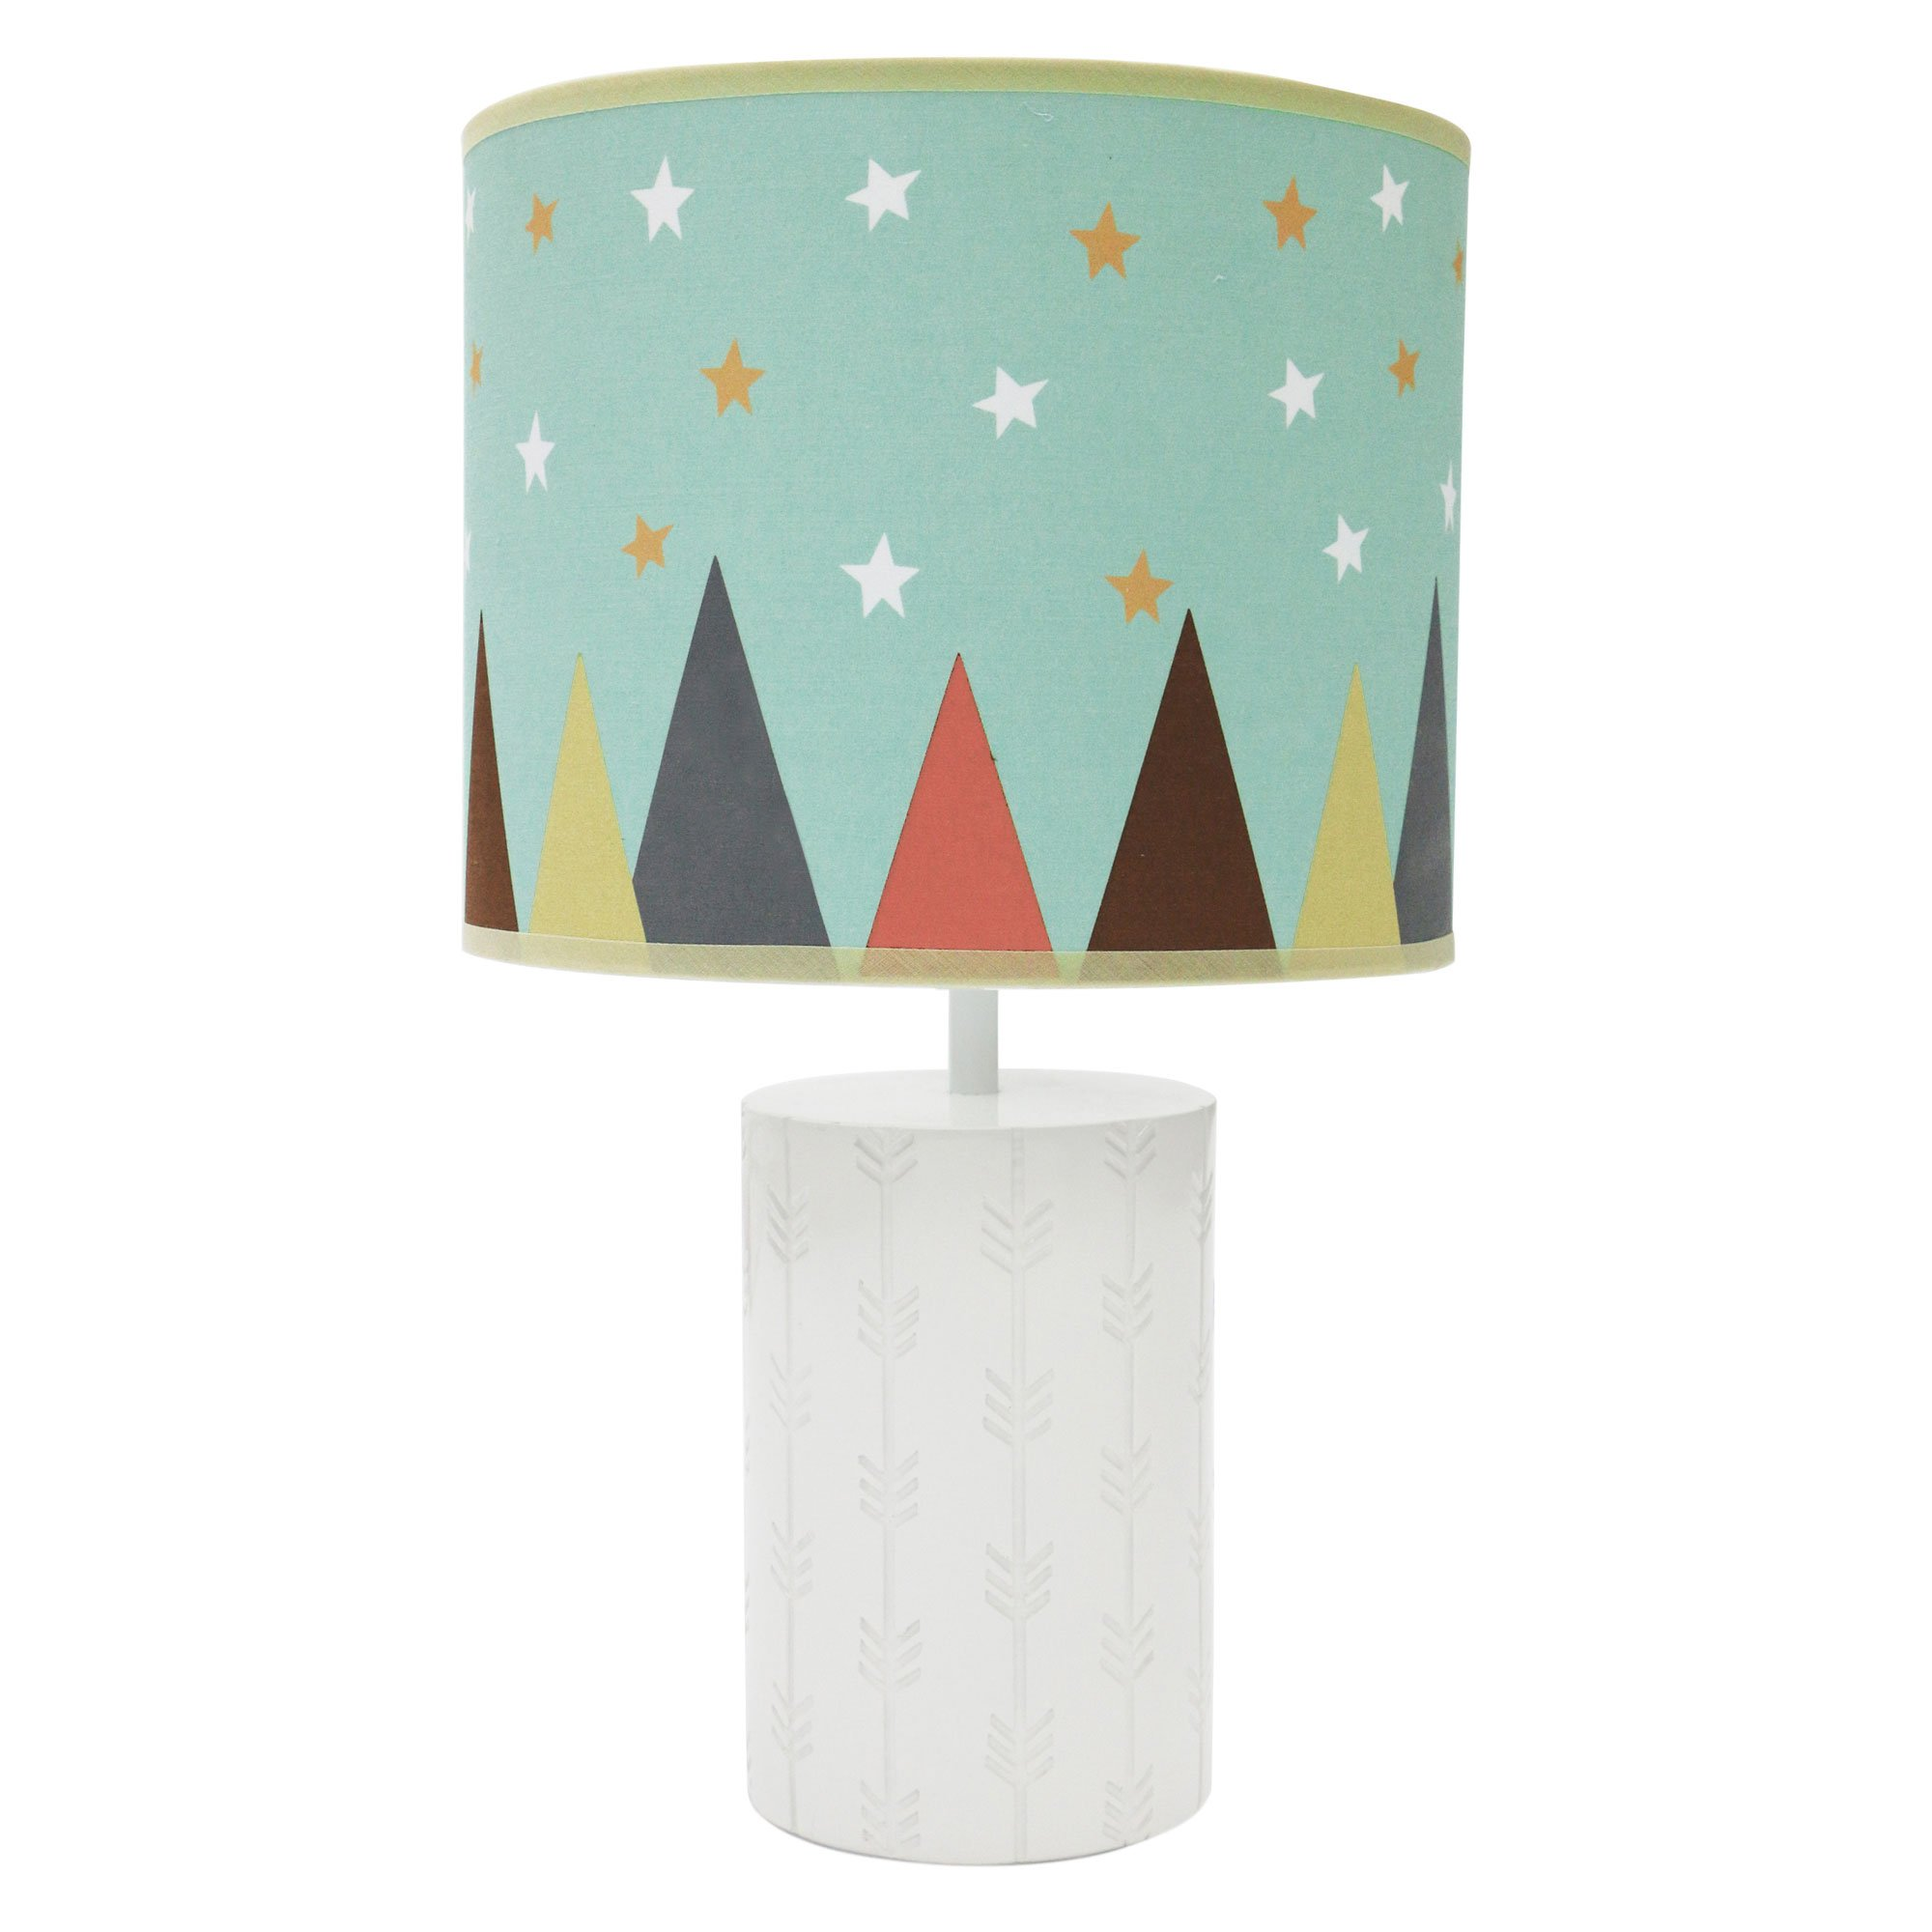 Clever Fox Lamp Base and Shade by Little Haven